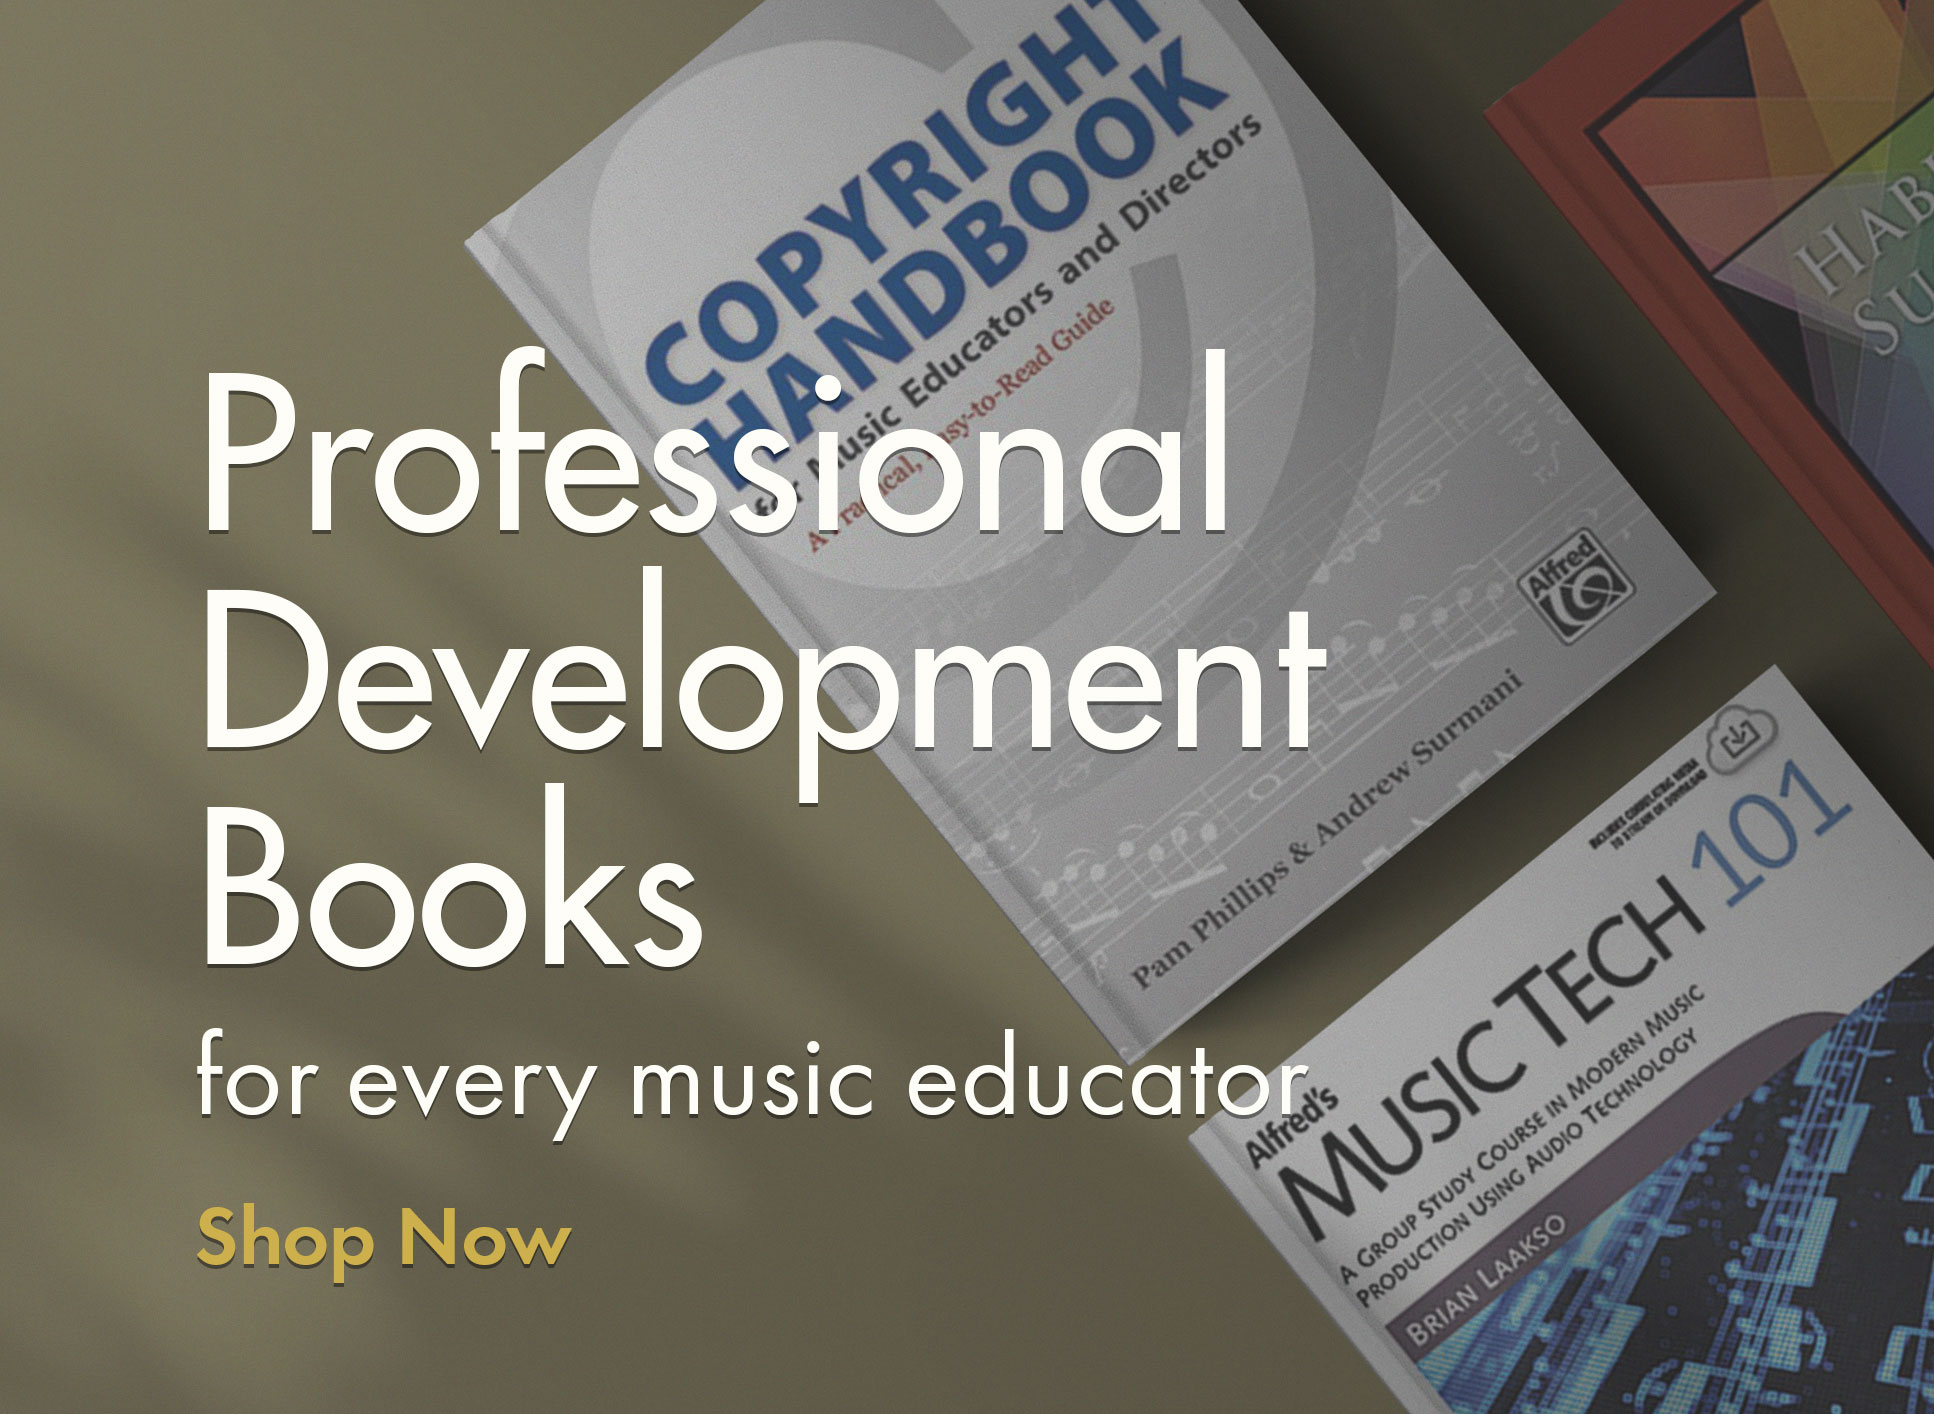 Shop professional development books for the music educator.